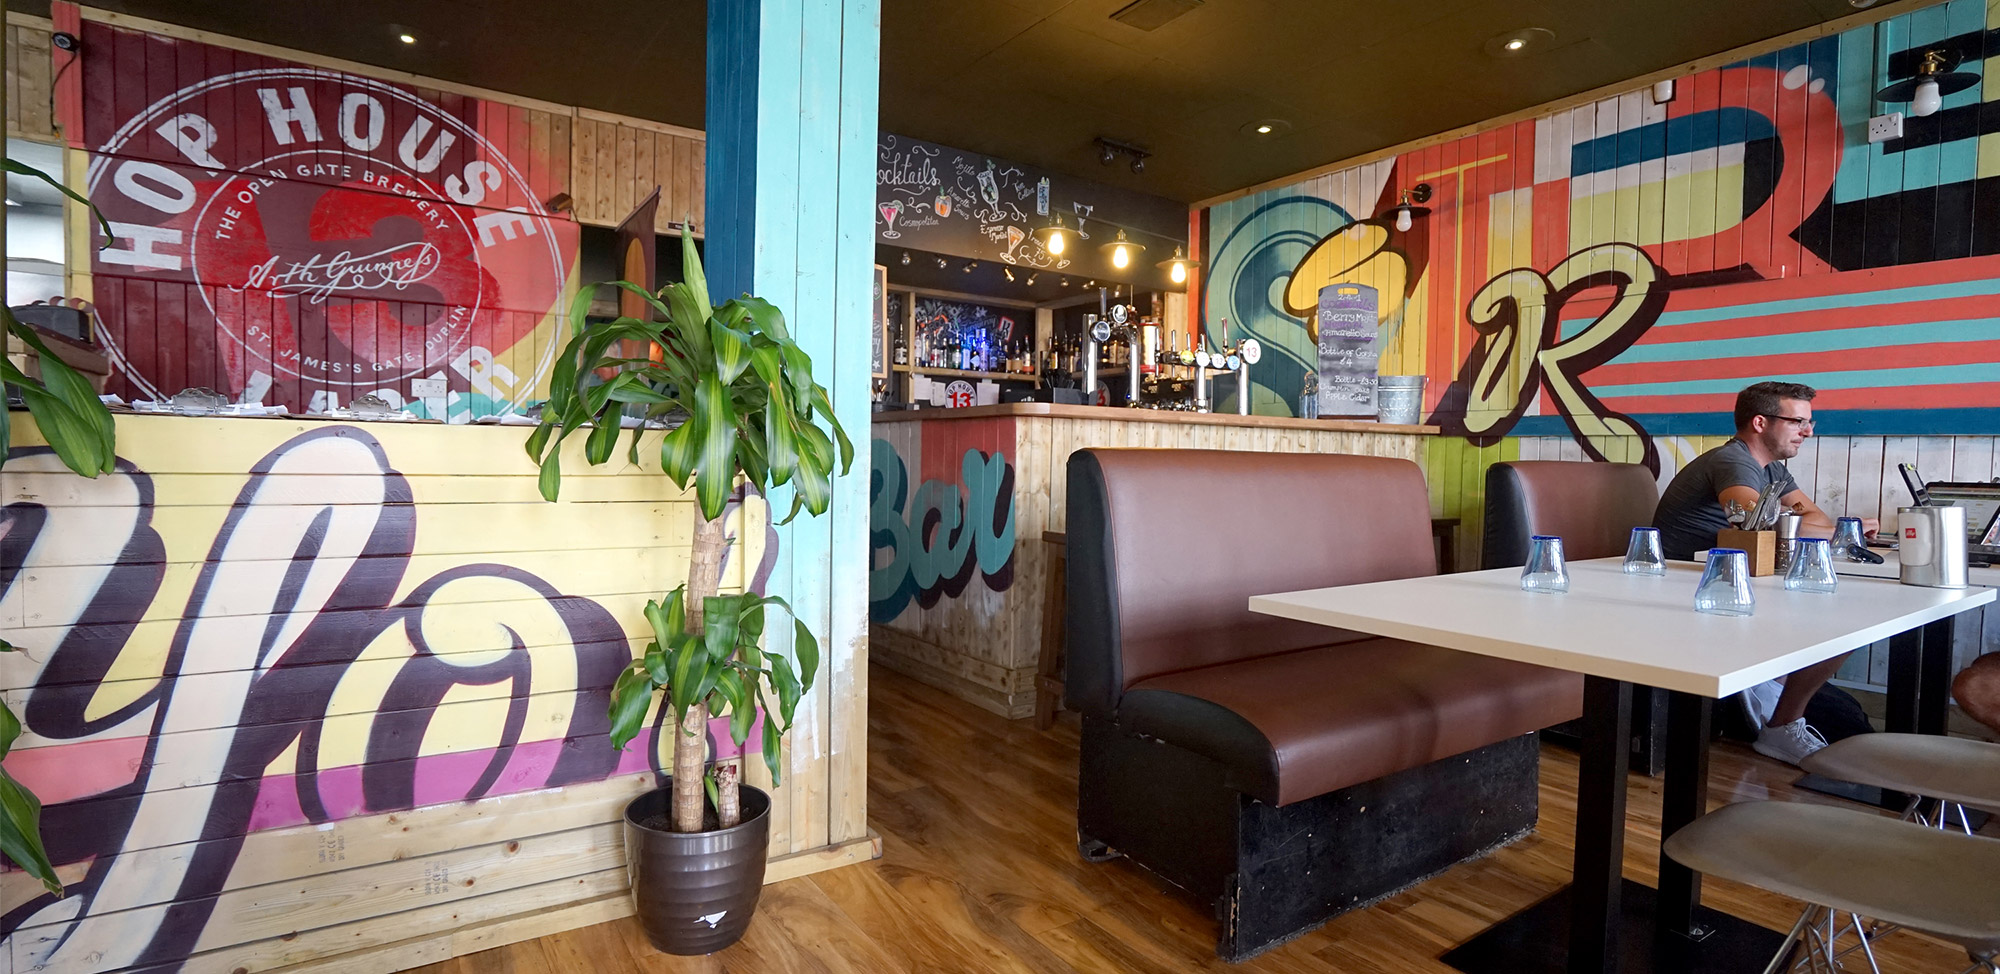 Supergraphics and Photorealistic Mural in Street Bar & Restaurant Bournemouth by Paintshop Studio